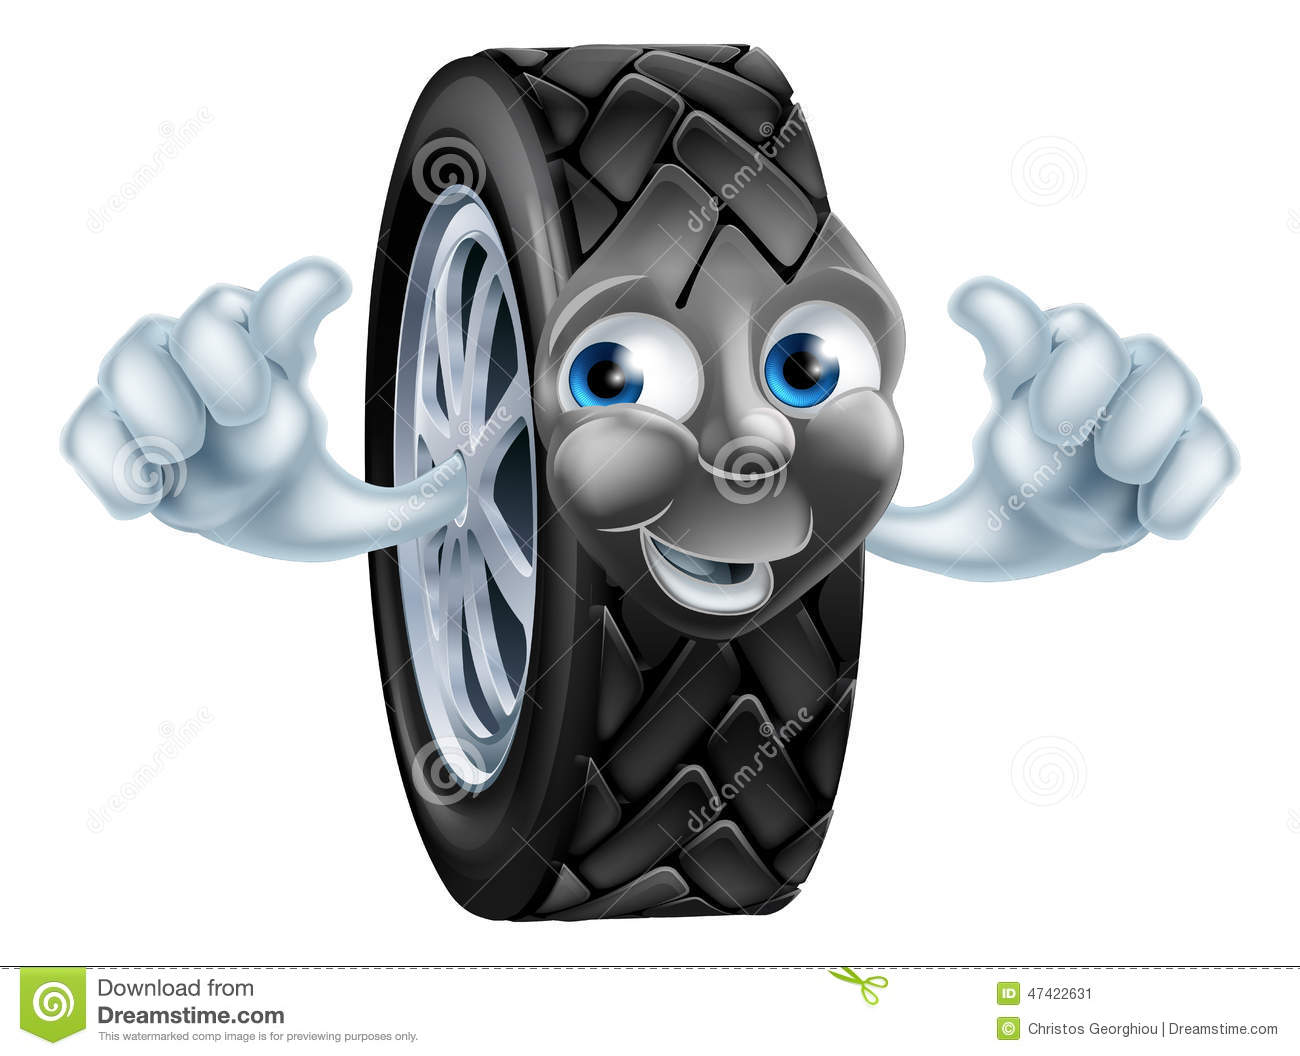 How To Read A Tire >> Cartoon Tire Mascot Stock Vector - Image: 47422631